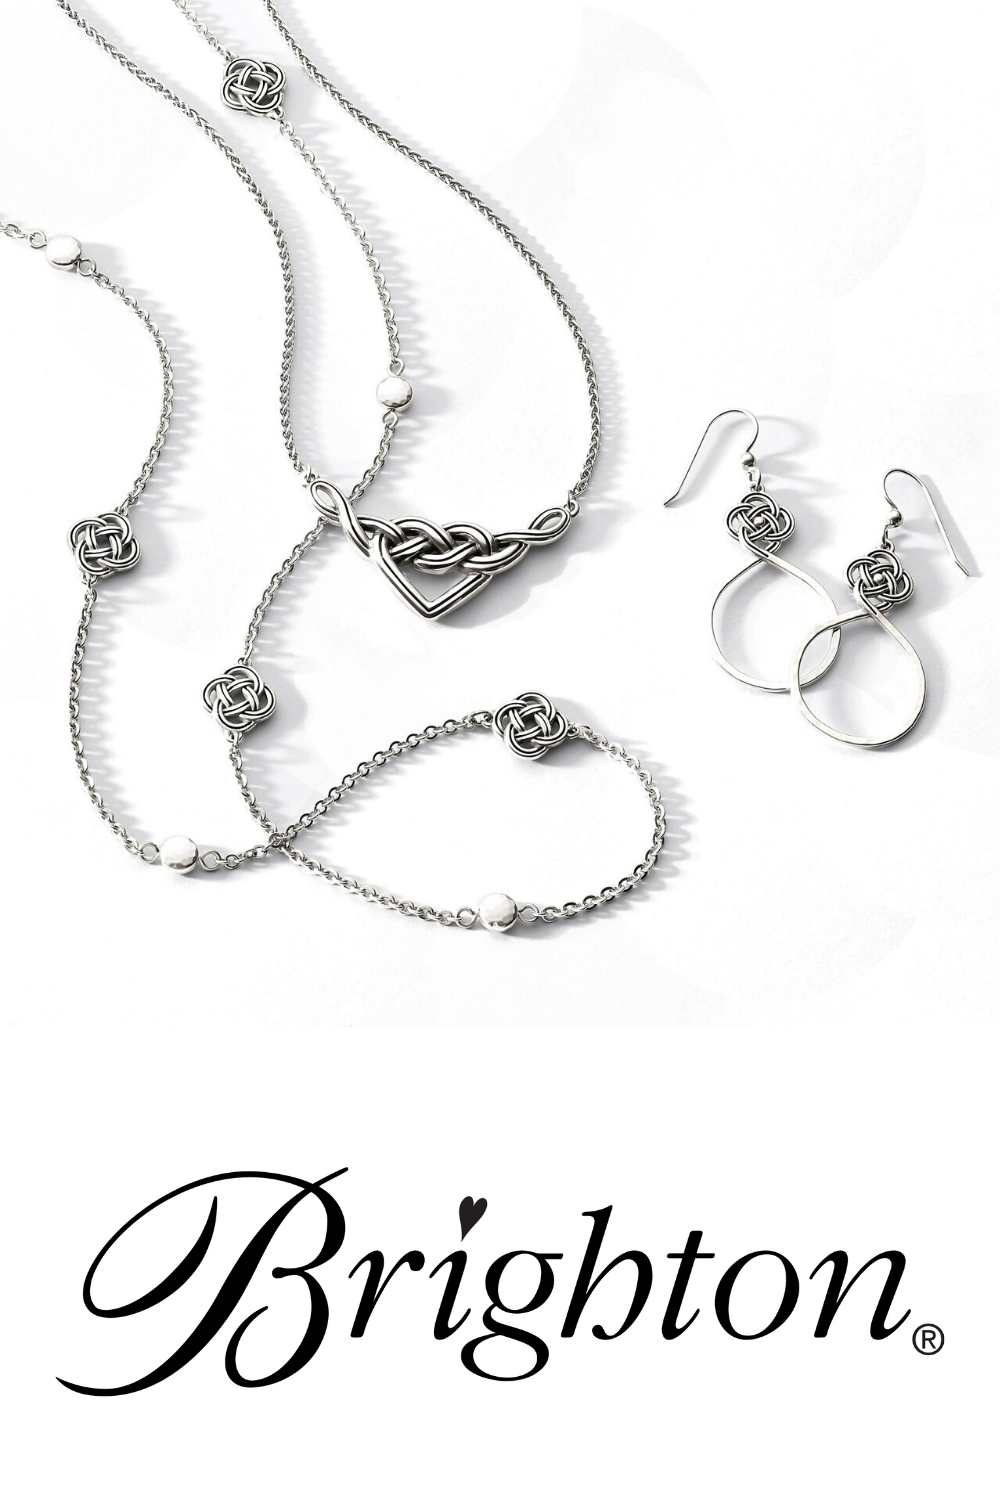 10++ Stores that carry brighton jewelry information